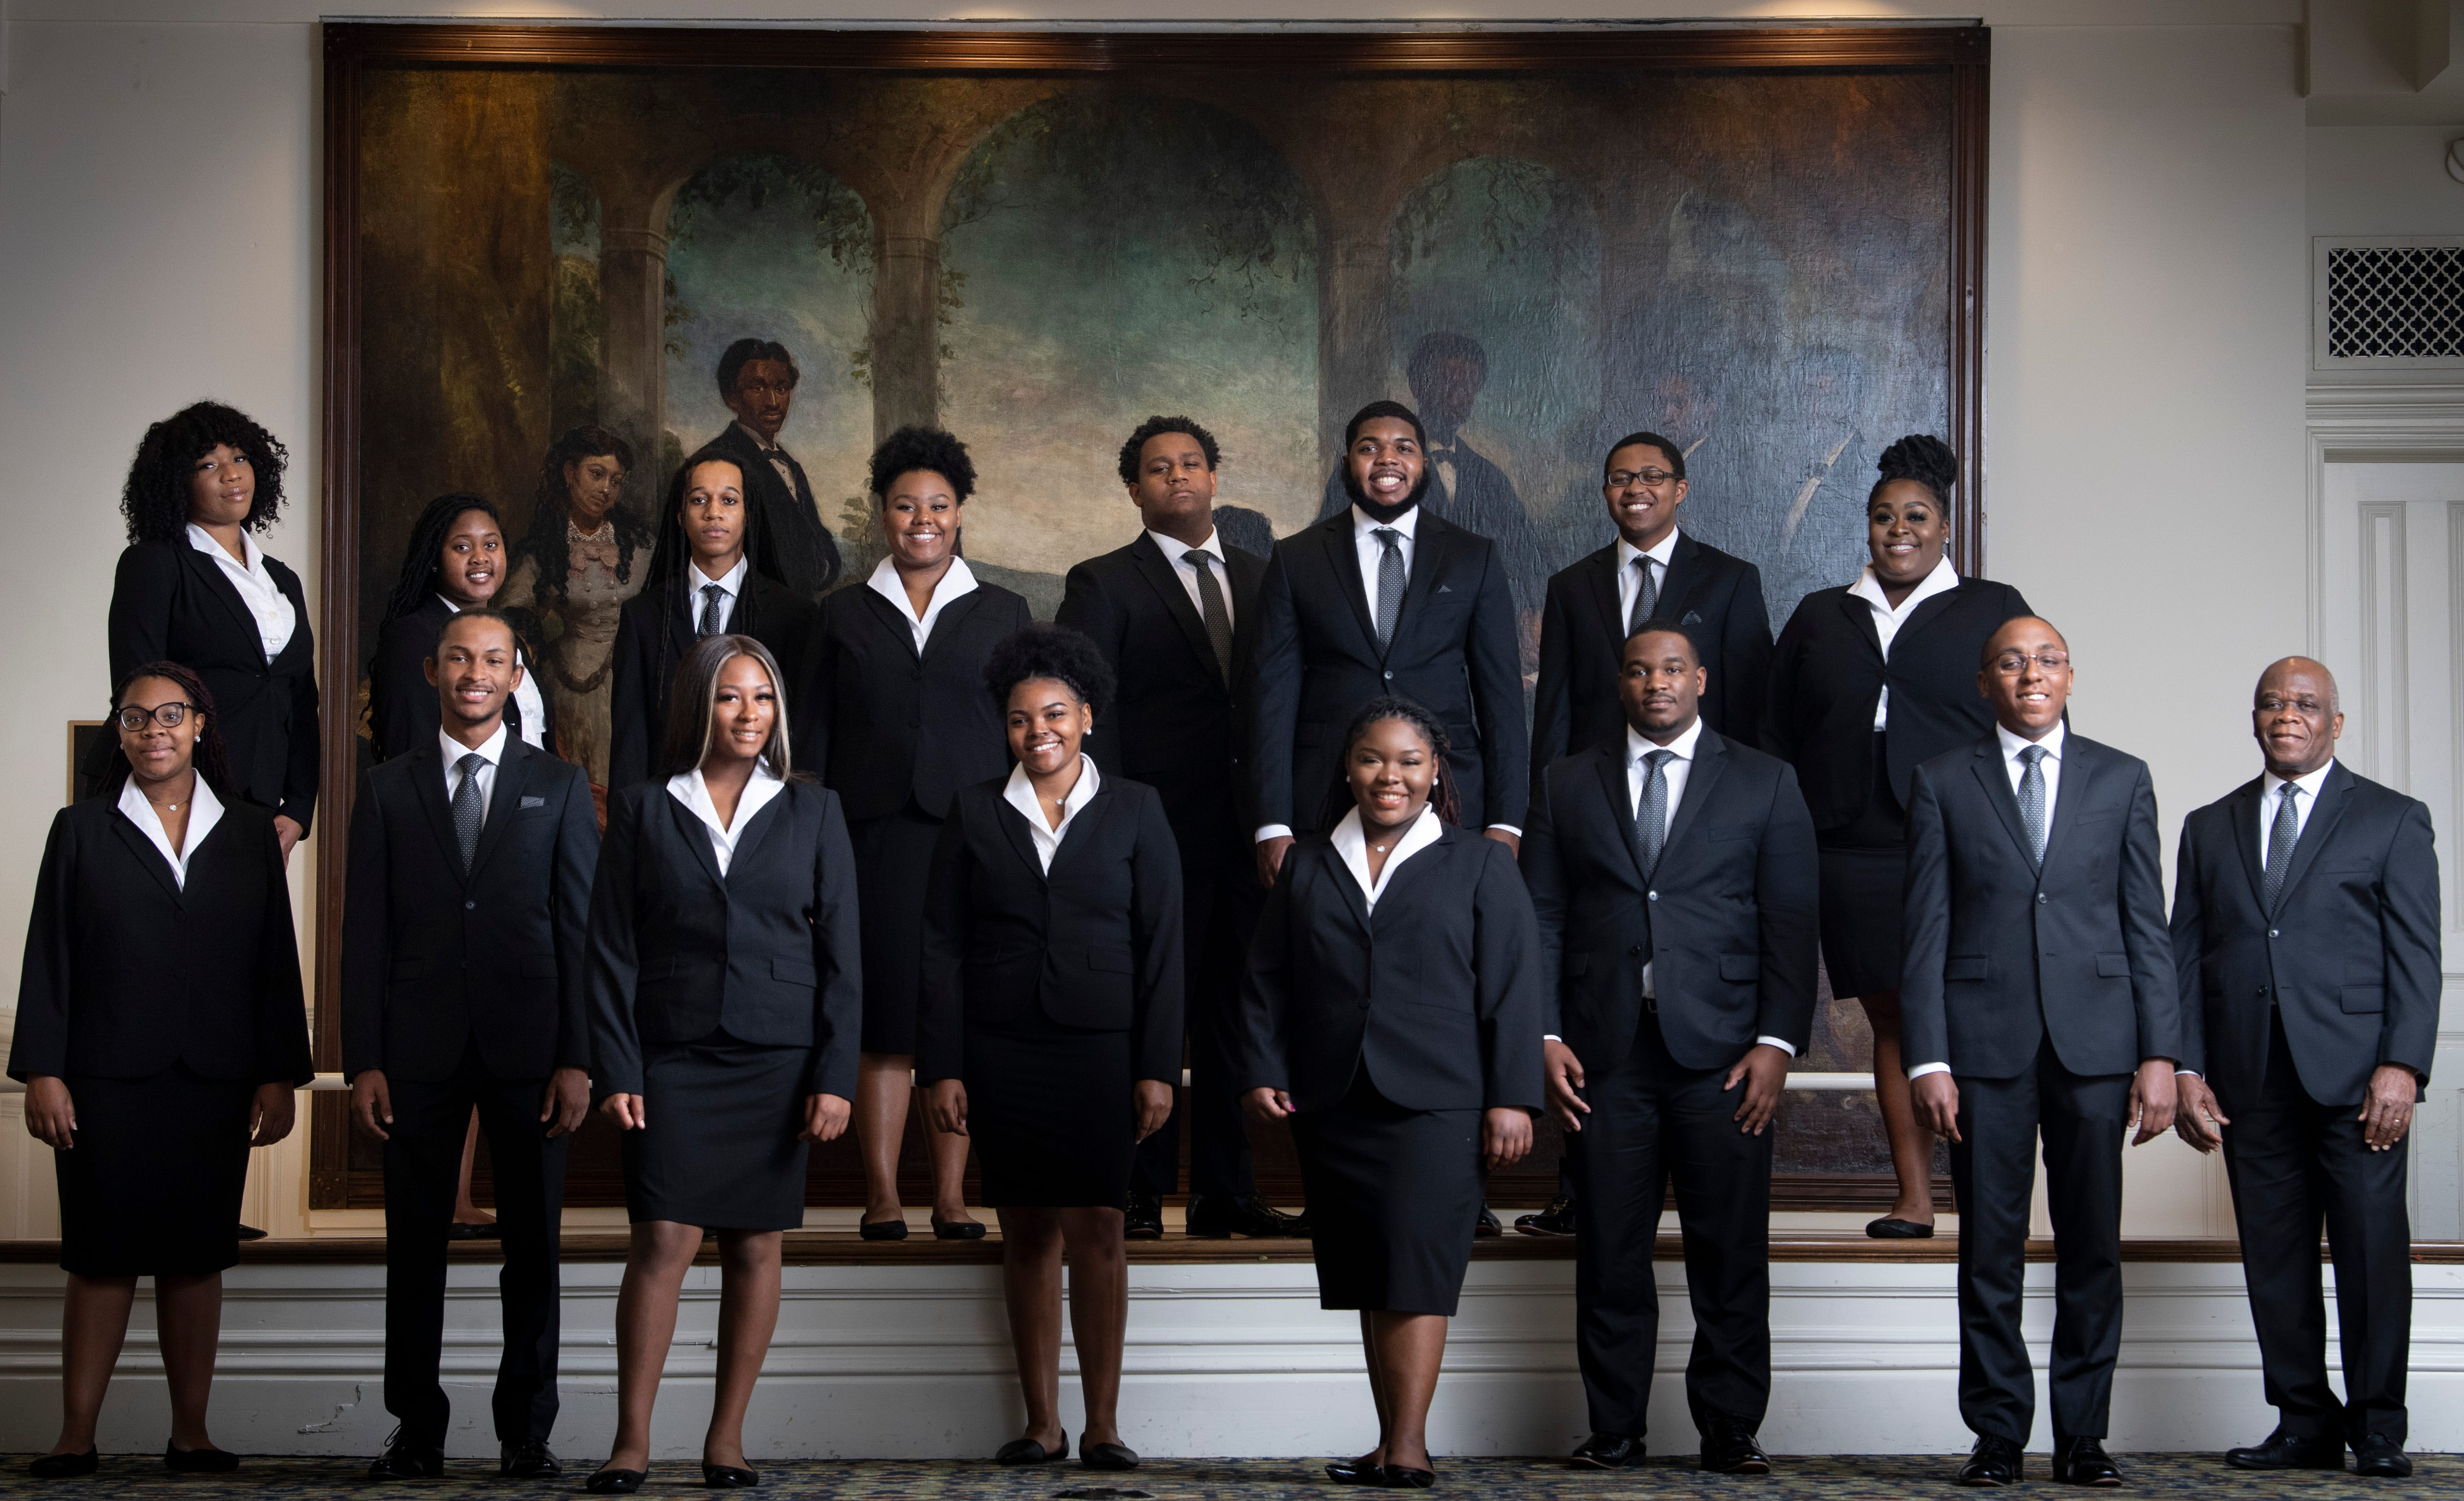 """The Fisk Jubilee Singers pose for a portrait Thursday, Oct. 29, 2020, in Nashville, Tenn. The Fisk Jubilee Singers are vocal artists and students at Fisk University who sing and travel worldwide. The original Fisk Jubilee Singers introduced """"slave songs"""" to the world in 1871 and were instrumental in preserving the unique American musical tradition of Negro spirituals."""